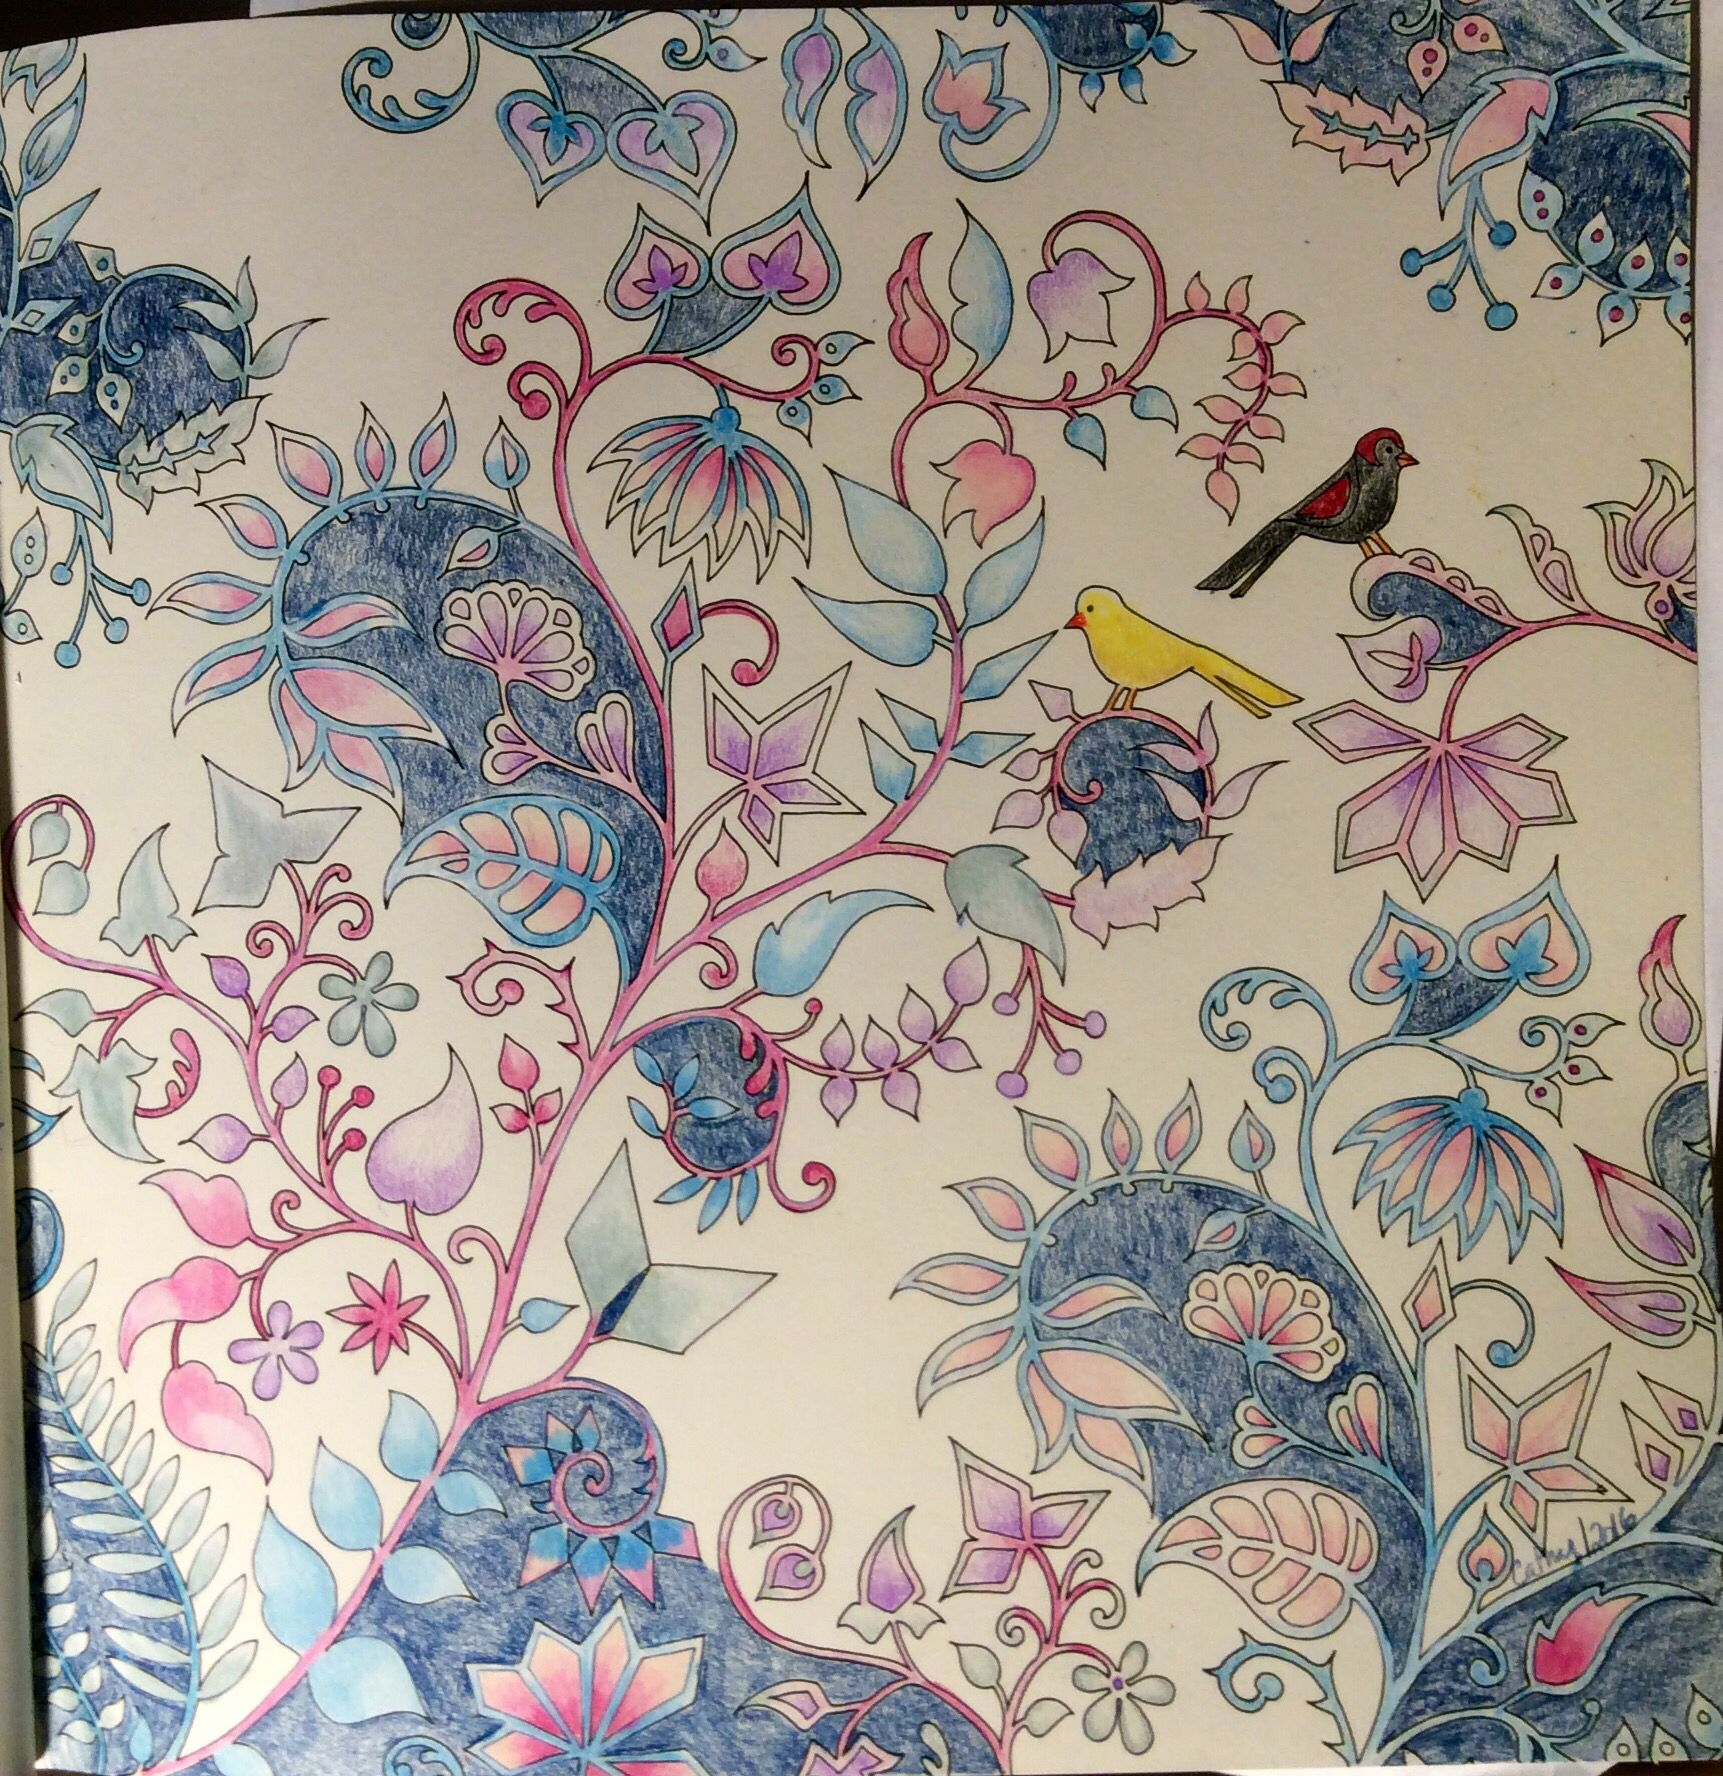 Two Birds On Flowering Vines Enchanted Forest Johanna Basford Cathyc Pencil Crayons Coloring BooksAdult